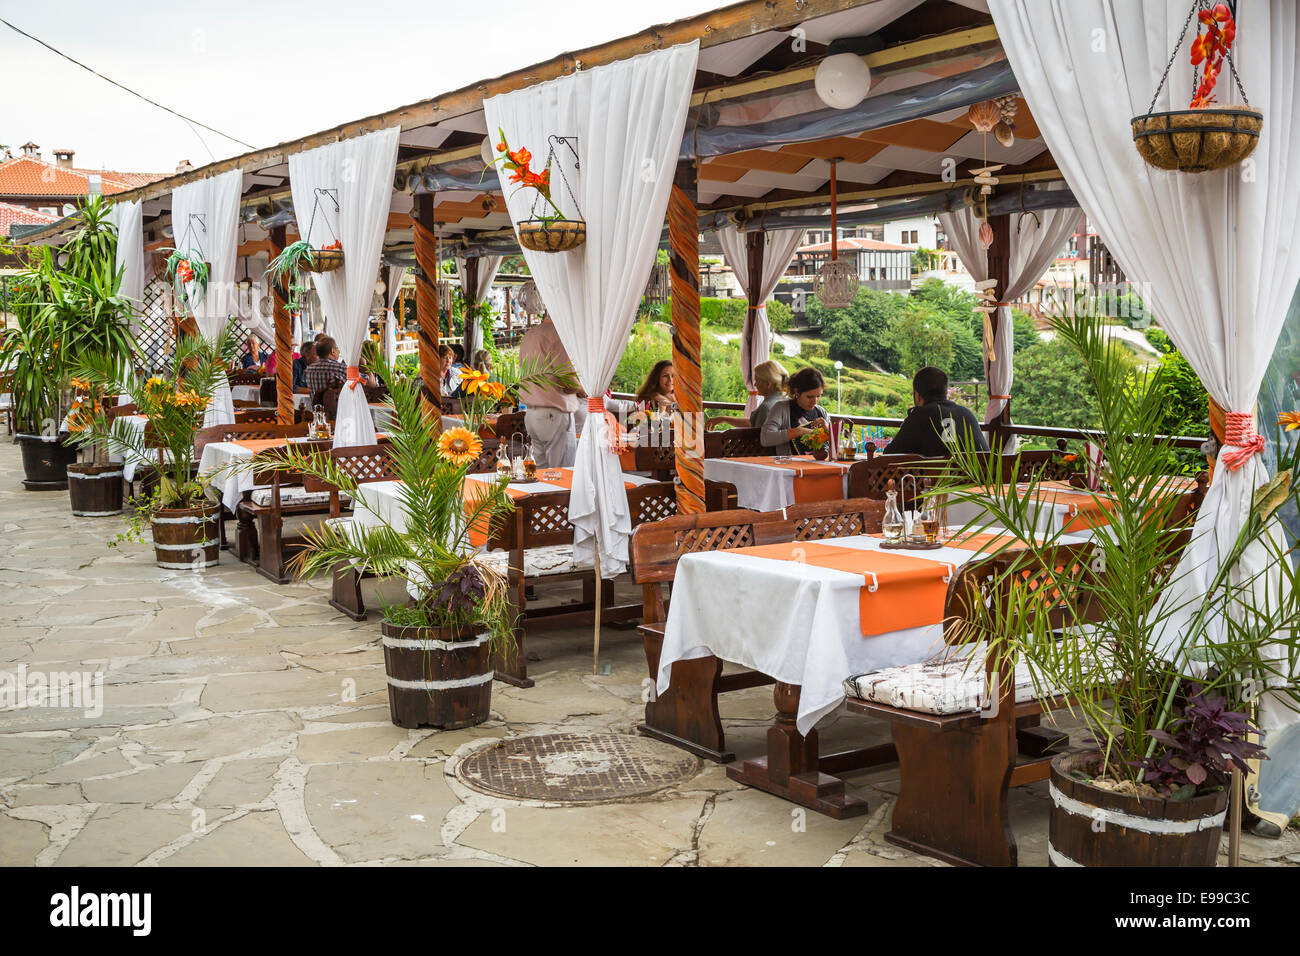 Decor of an outdoor seaside restaurant in Nessebar, Bulgaria. - Stock Image